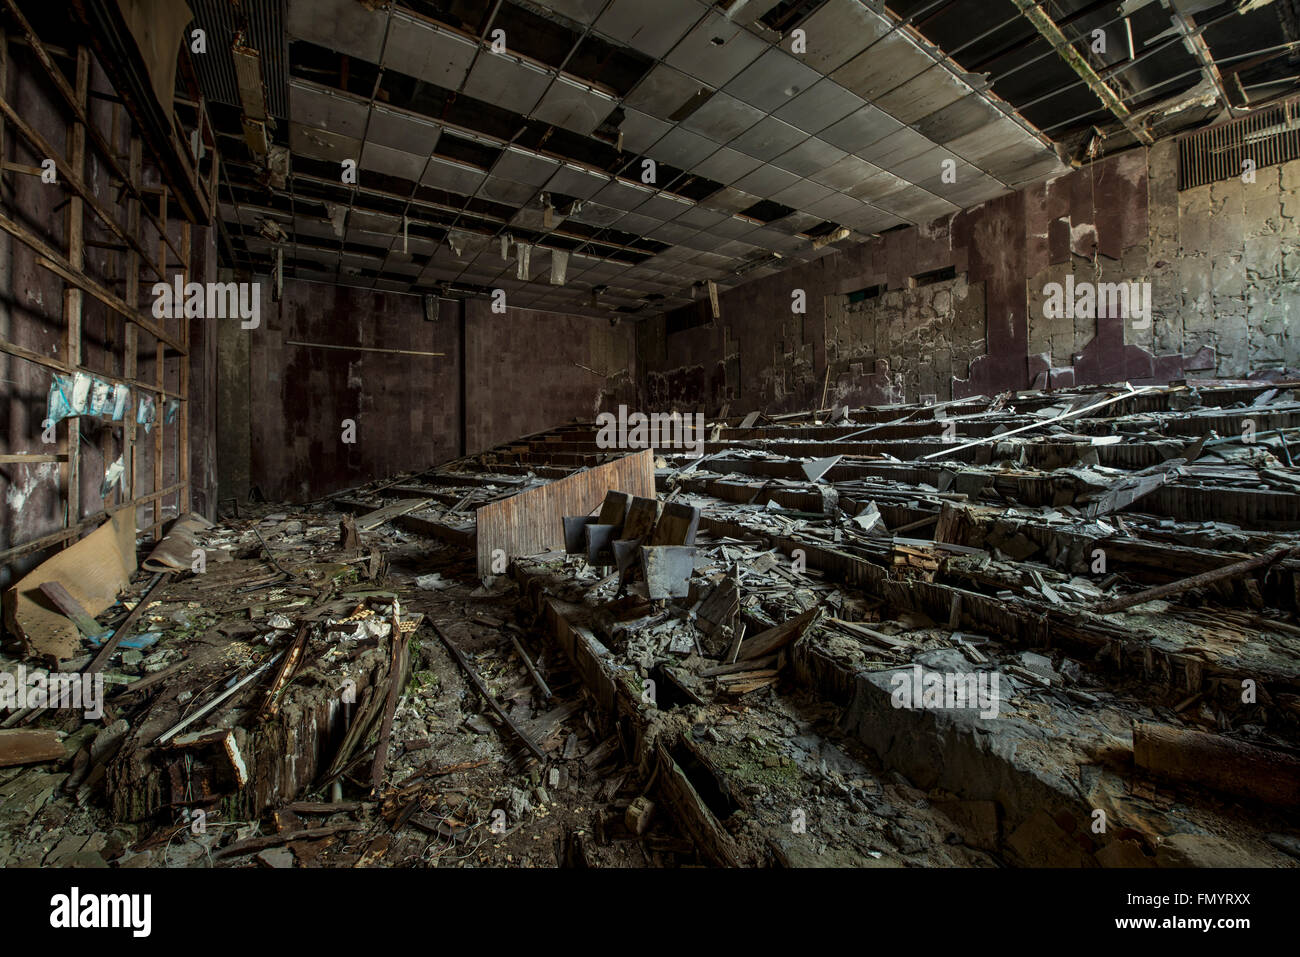 Burnt out cinema theater room in Pripyat, Chernobyl scene of 1986 nuclear disaster - Stock Image